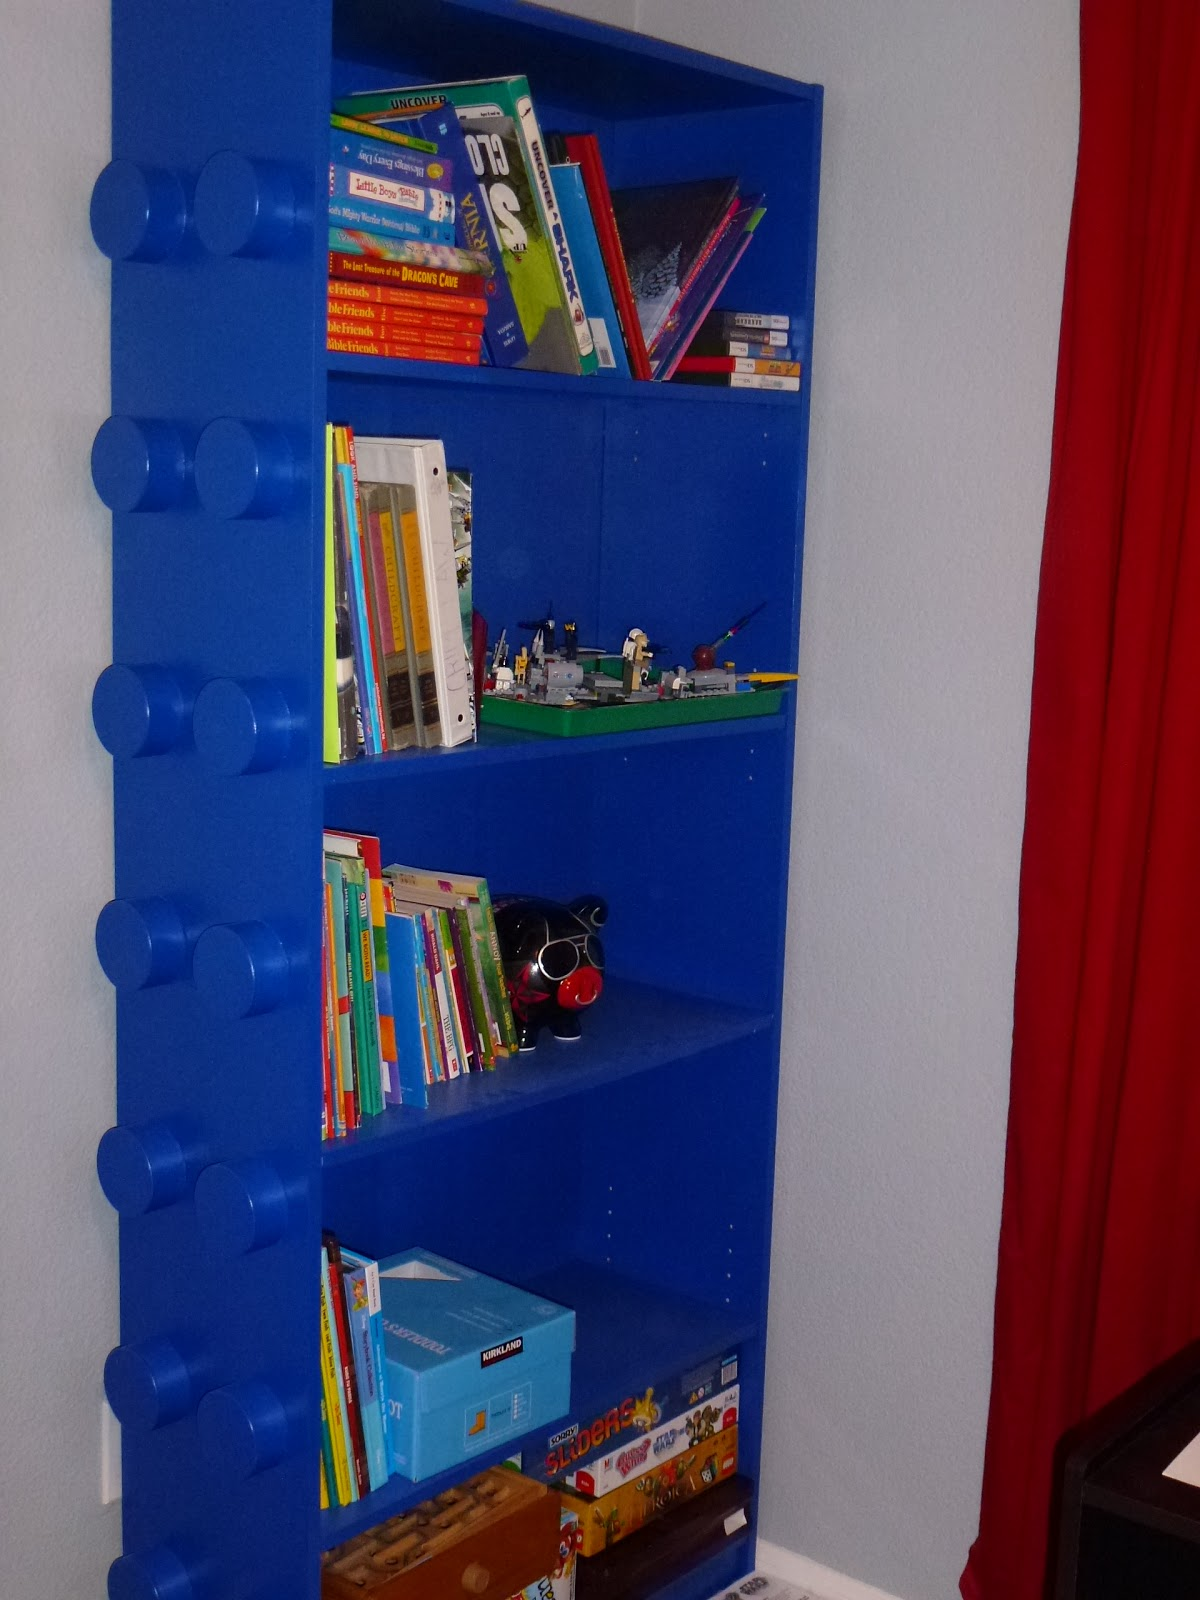 mb your ttv the message boards display image t lego bookshelf